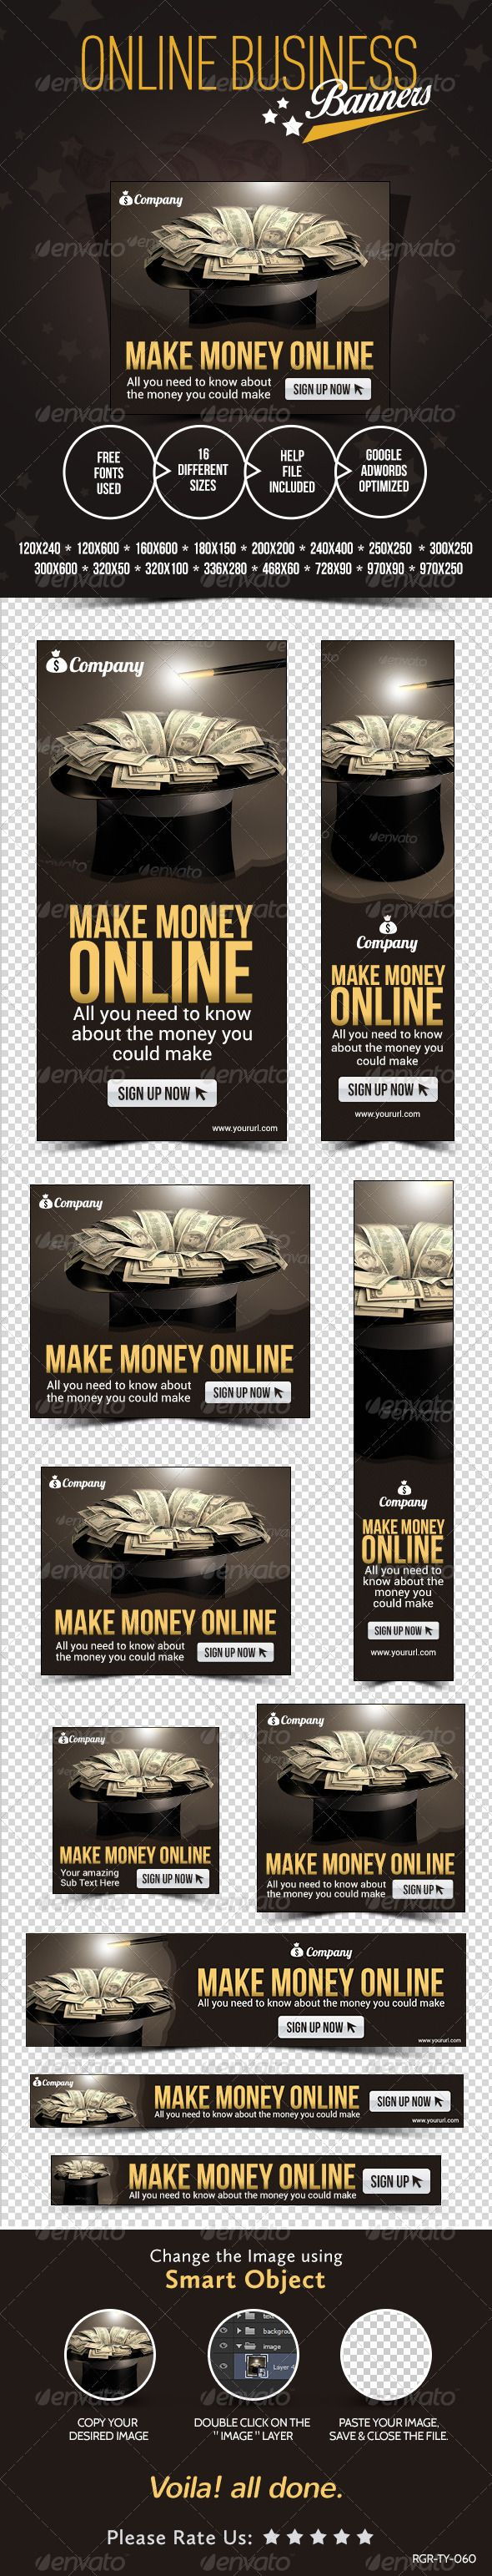 Make Money Online #Banners_Templates #PSD | Buy and Download: http://graphicriver.net/item/make-money-online-banners/8368071?WT.ac=category_thumb&WT.z_author=doto&ref=ksioks